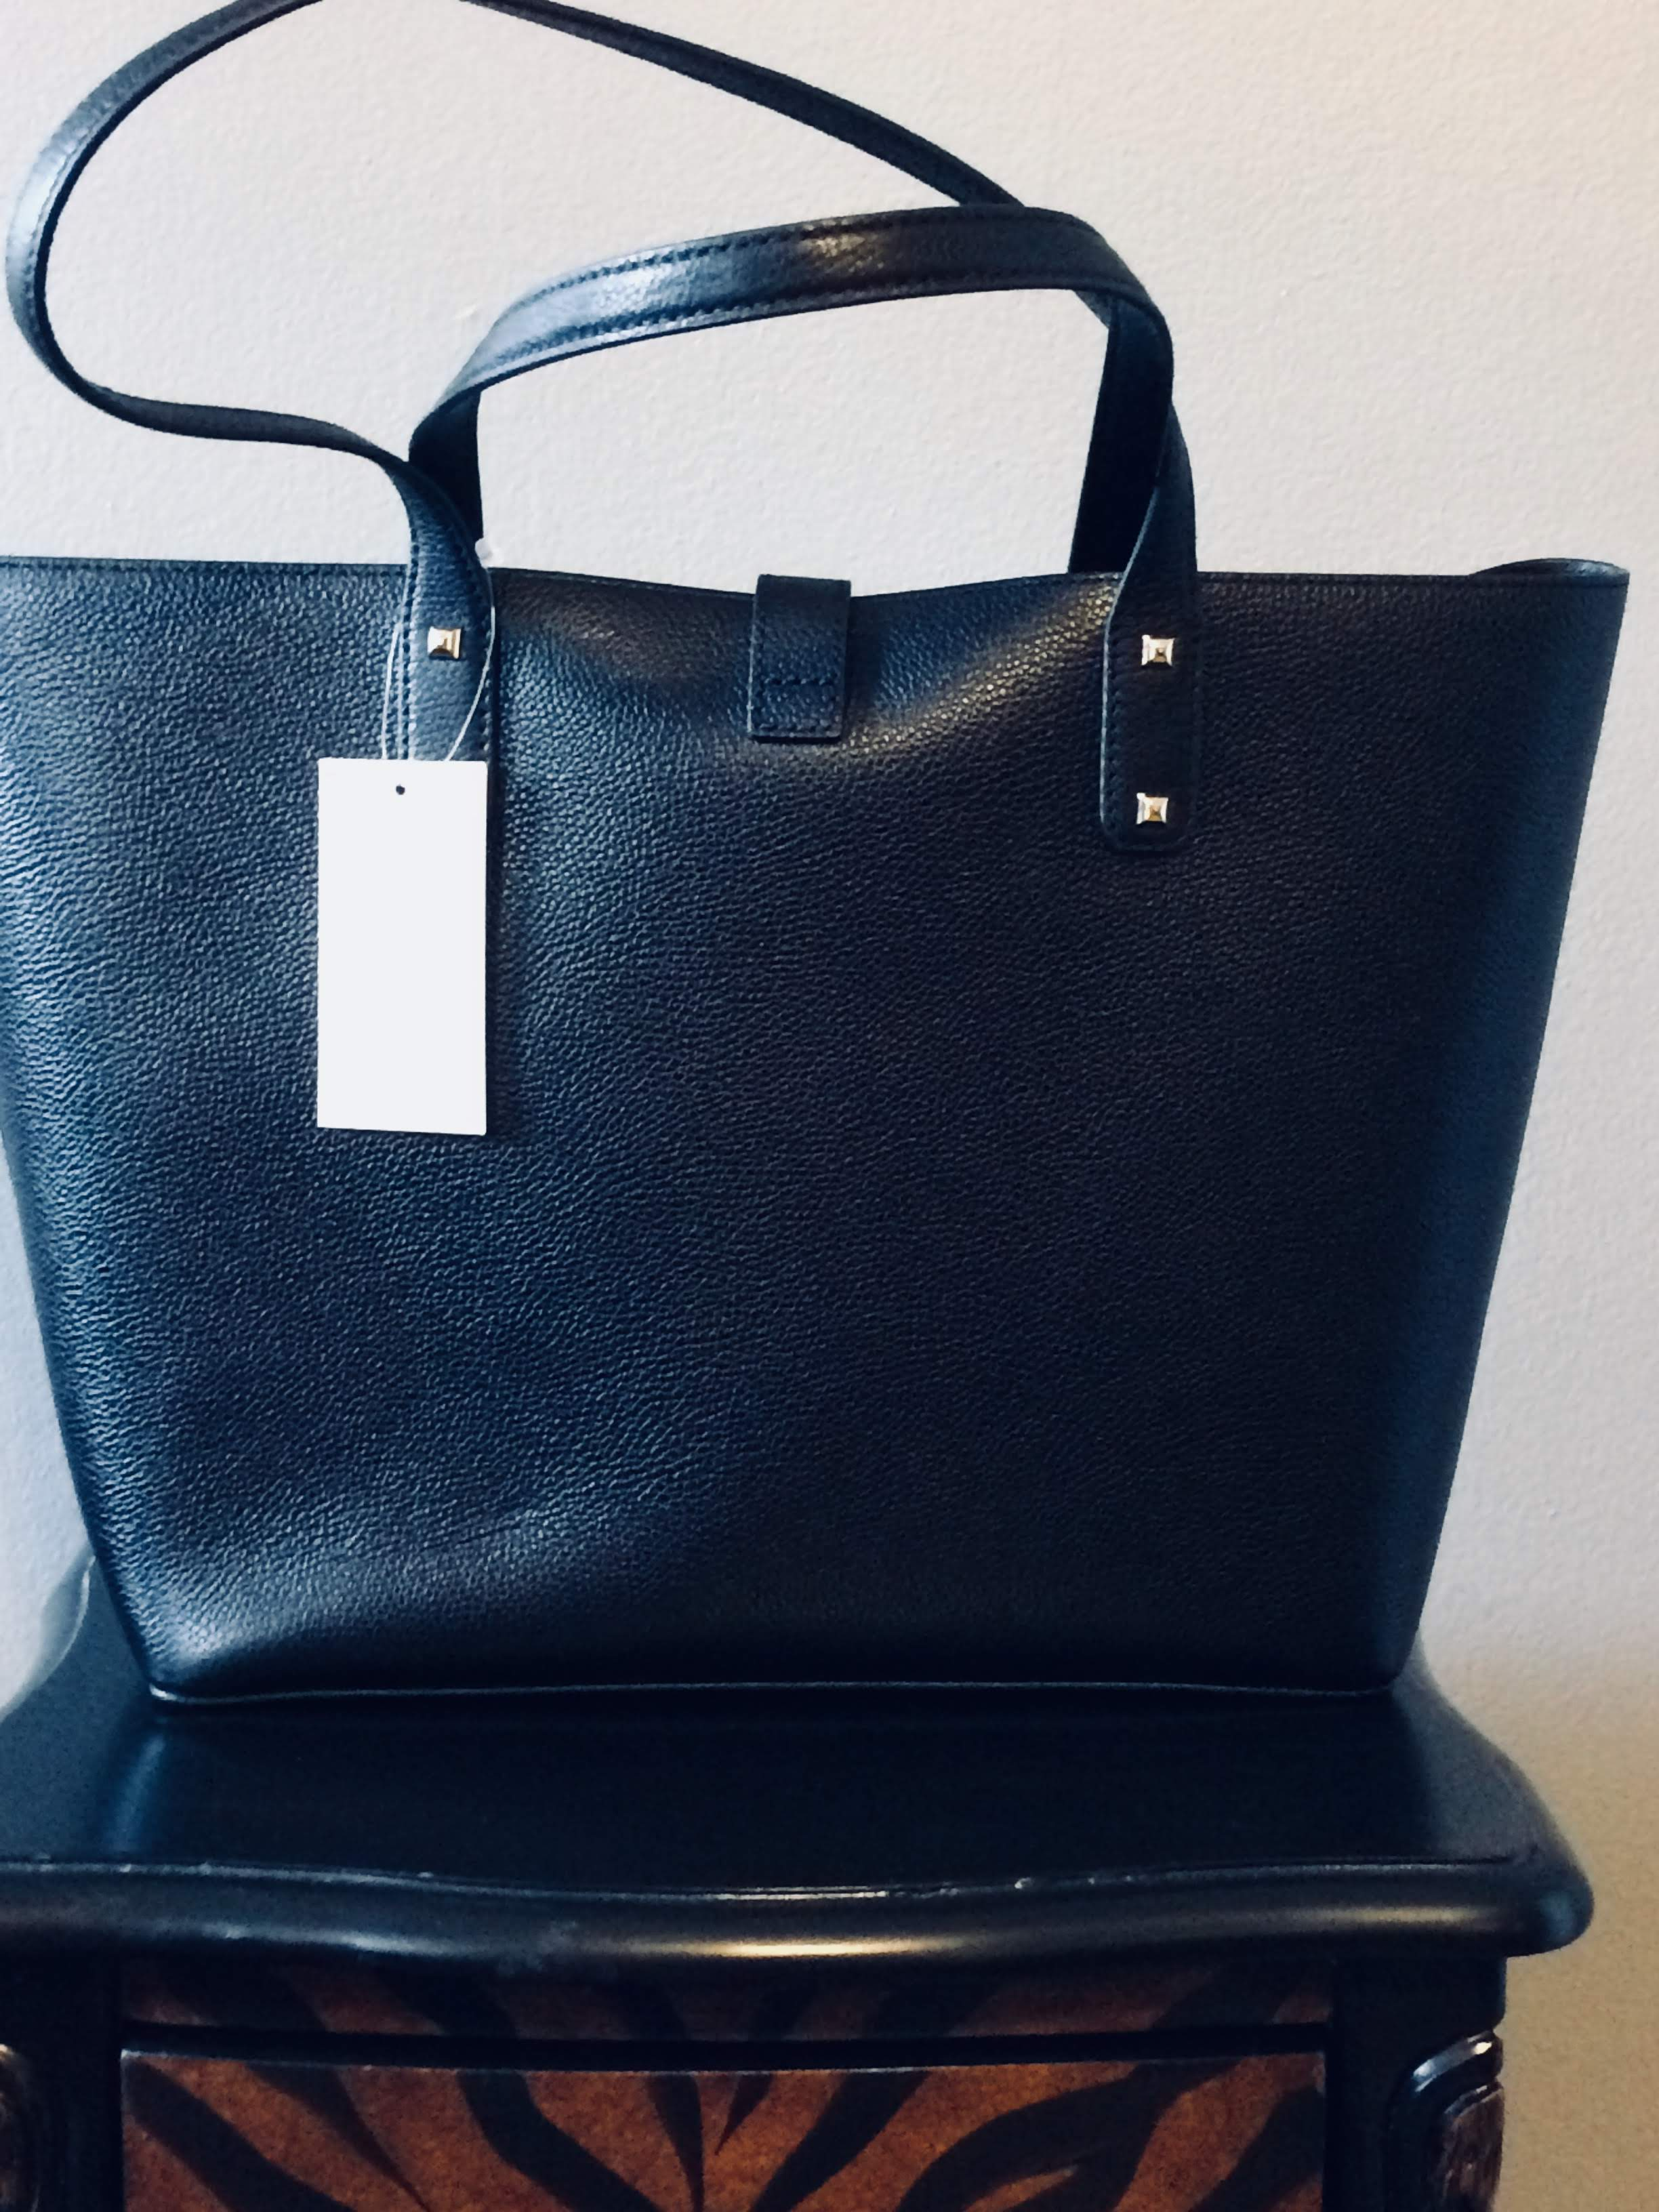 9c19d008063b30 MICHAEL Michael Kors Karson Large Black Pebbled Leather Carryall Tote NS